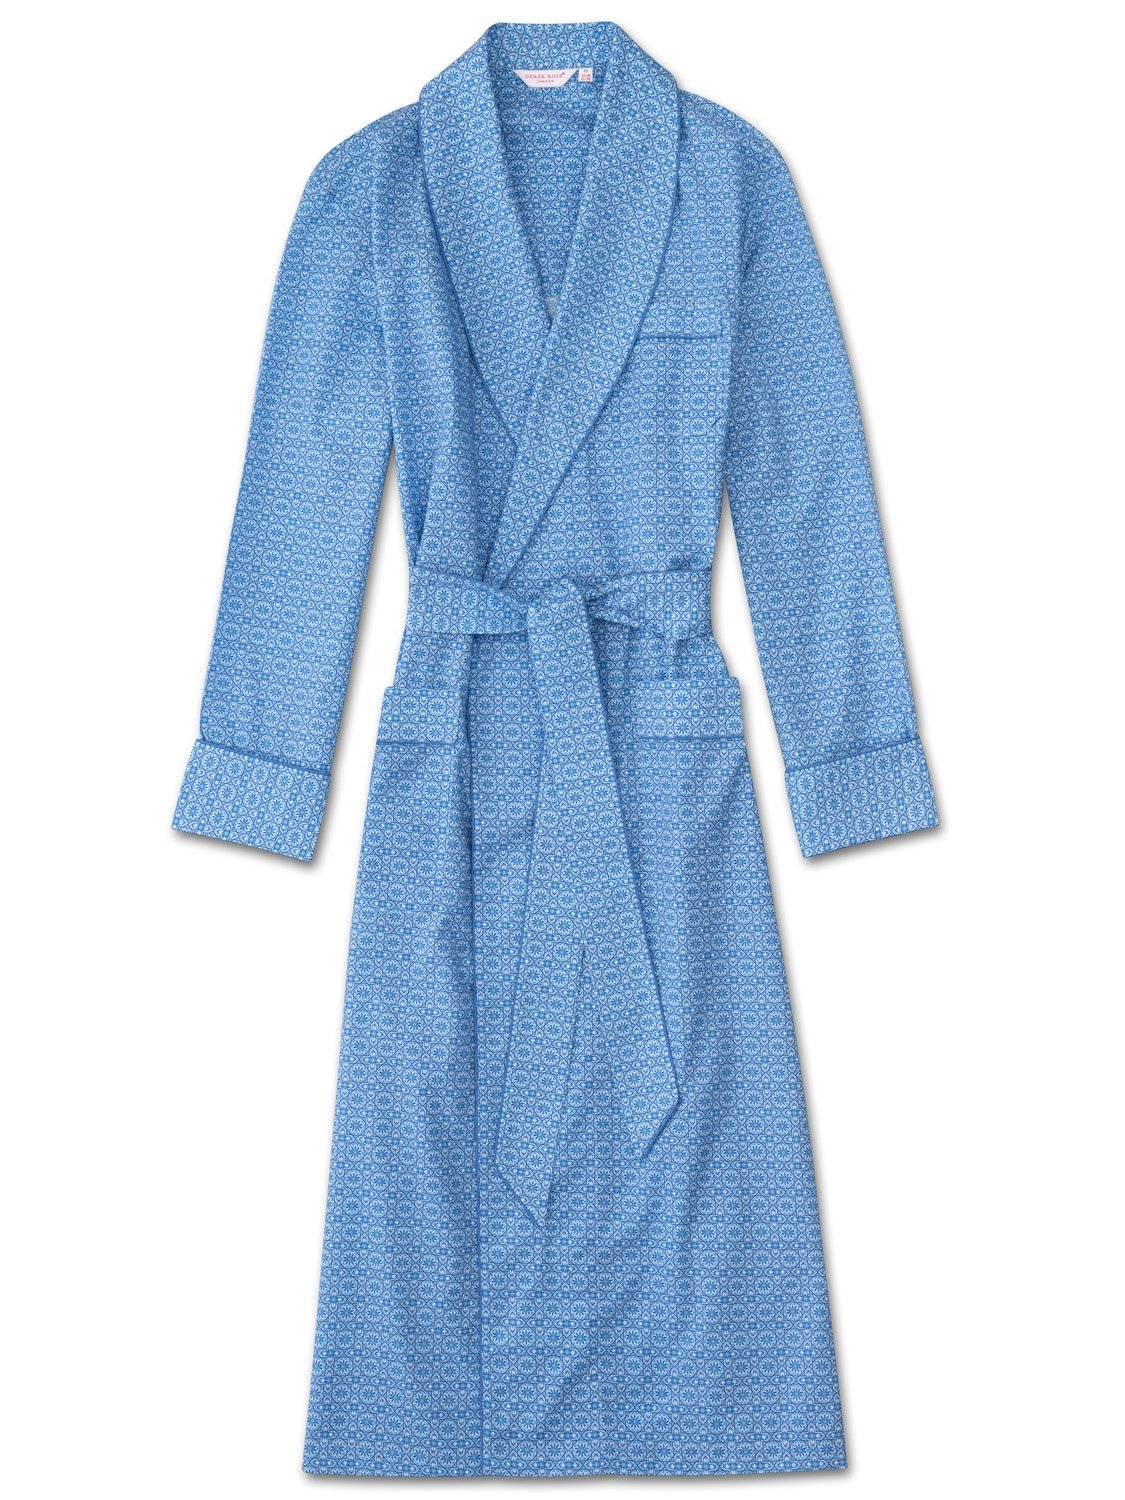 Men's Piped Dressing Gown Ledbury 5 Cotton Batiste Blue